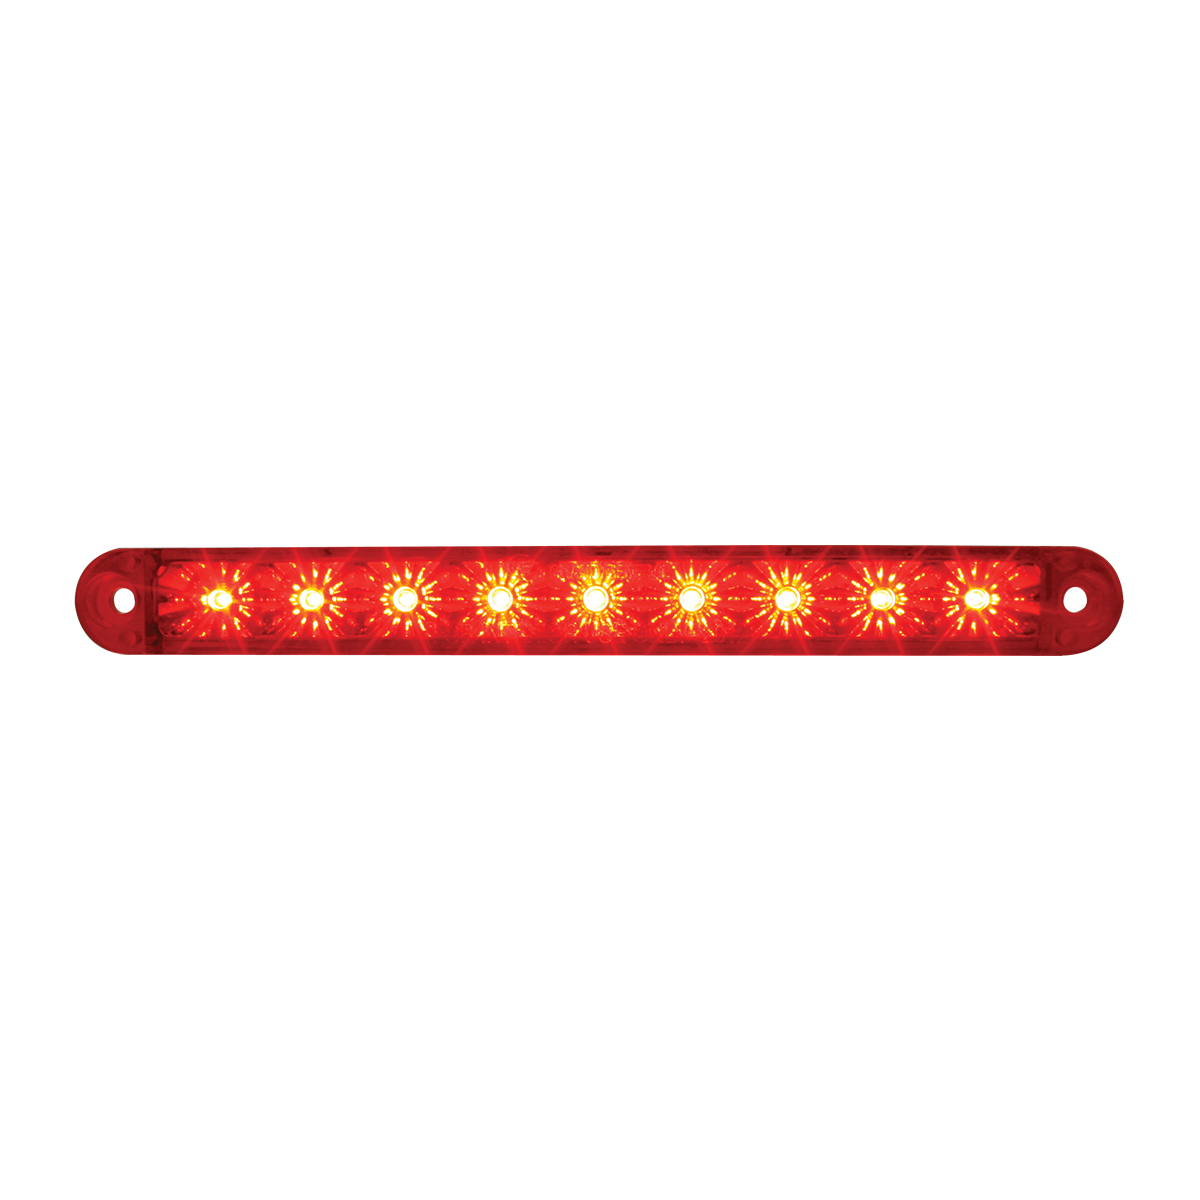 "76142 6.5"" Flush Mount LED Light Bar"